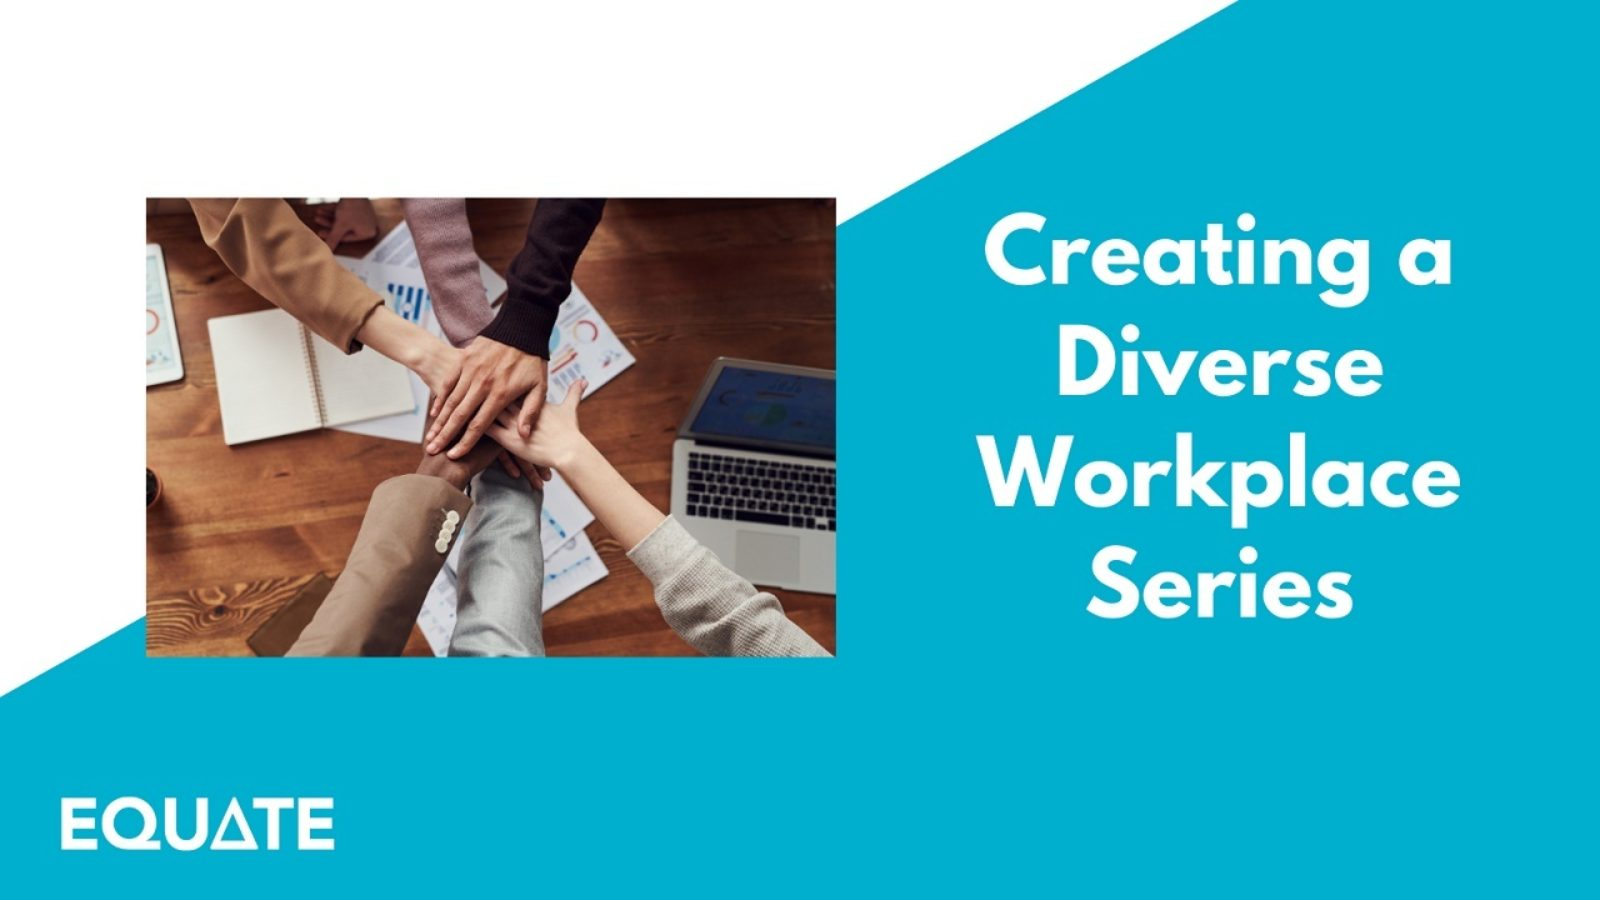 Creating a Diverse Workplace series enters round two